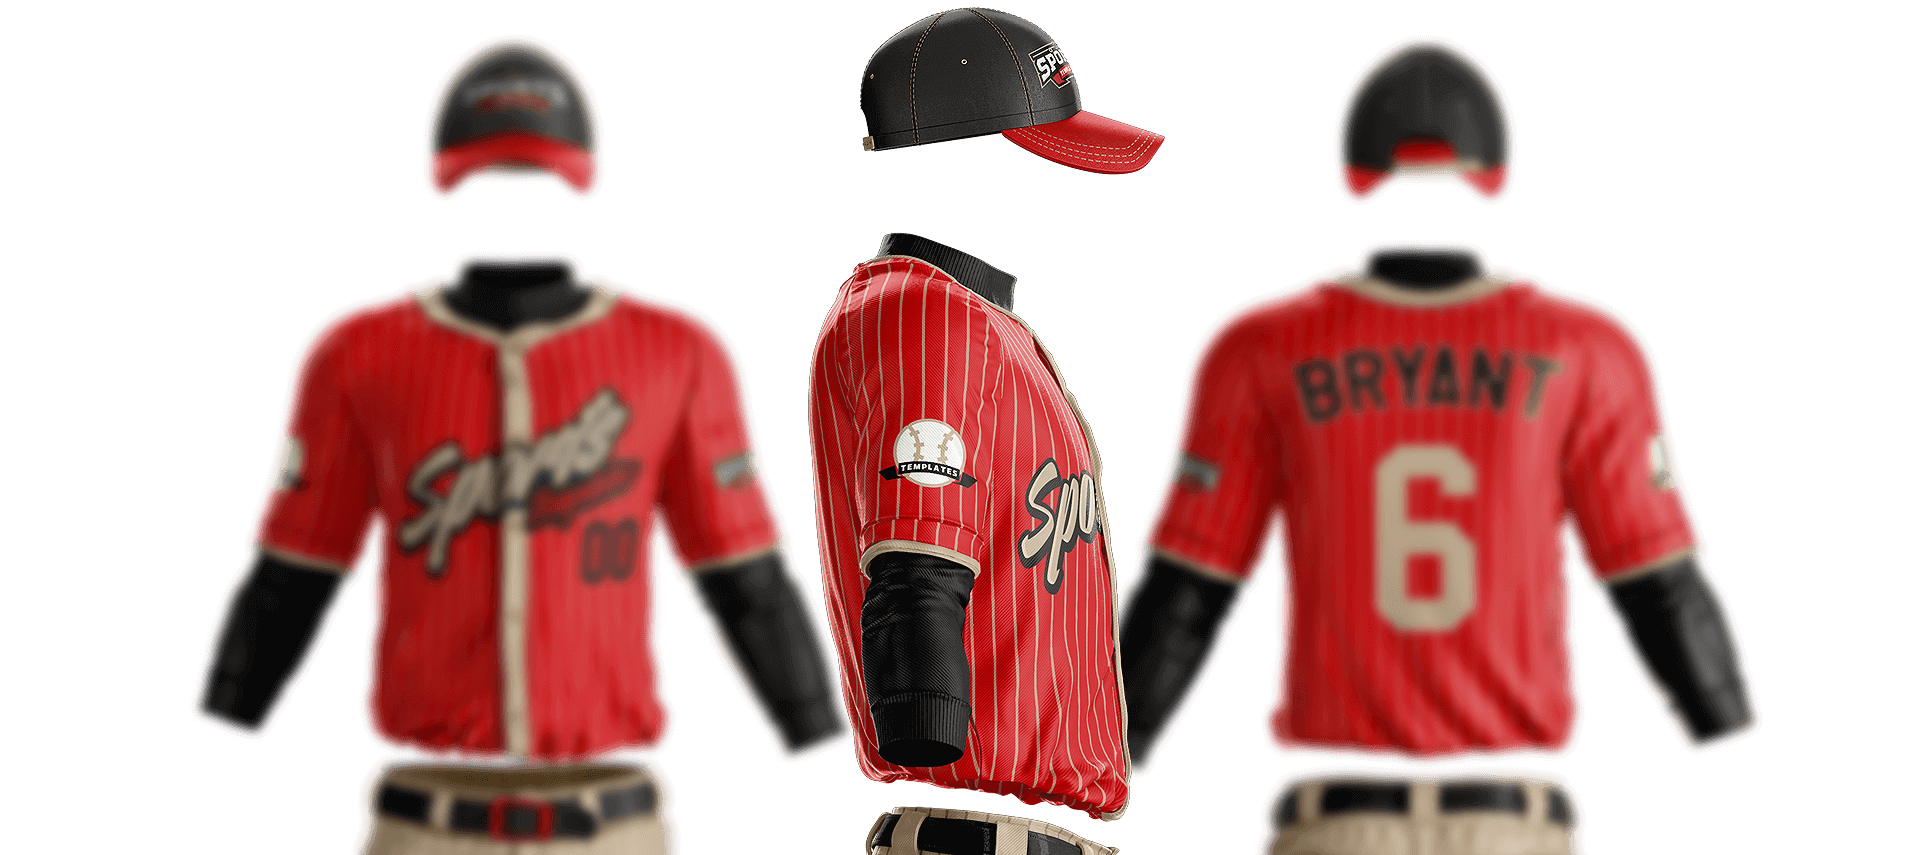 Design your own baseball uniform black lesbiens fucking for Softball uniform design templates